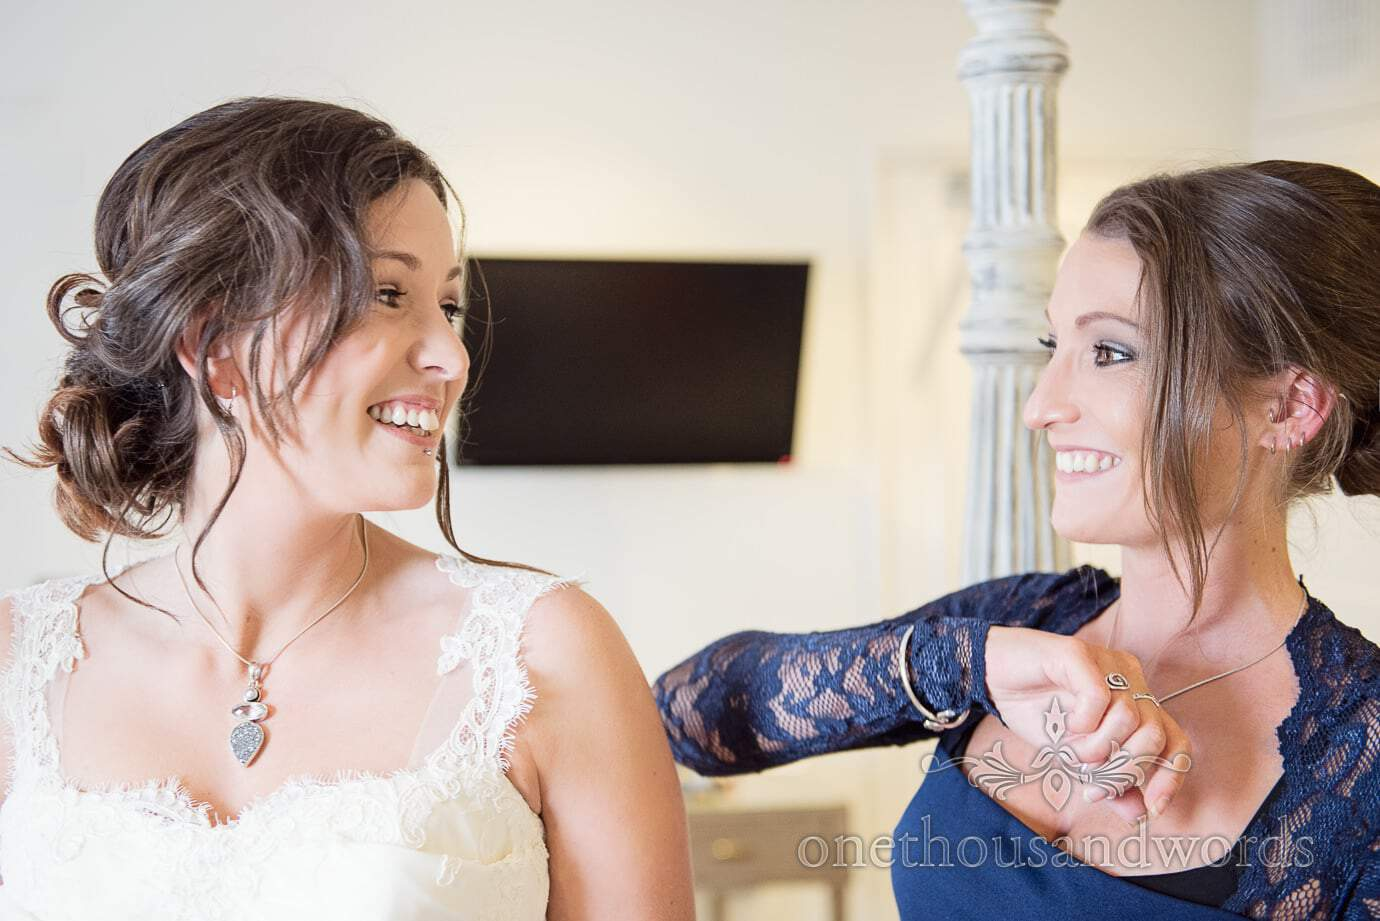 Beautiful brunette bride and bridesmaid look at each other during wedding preparations